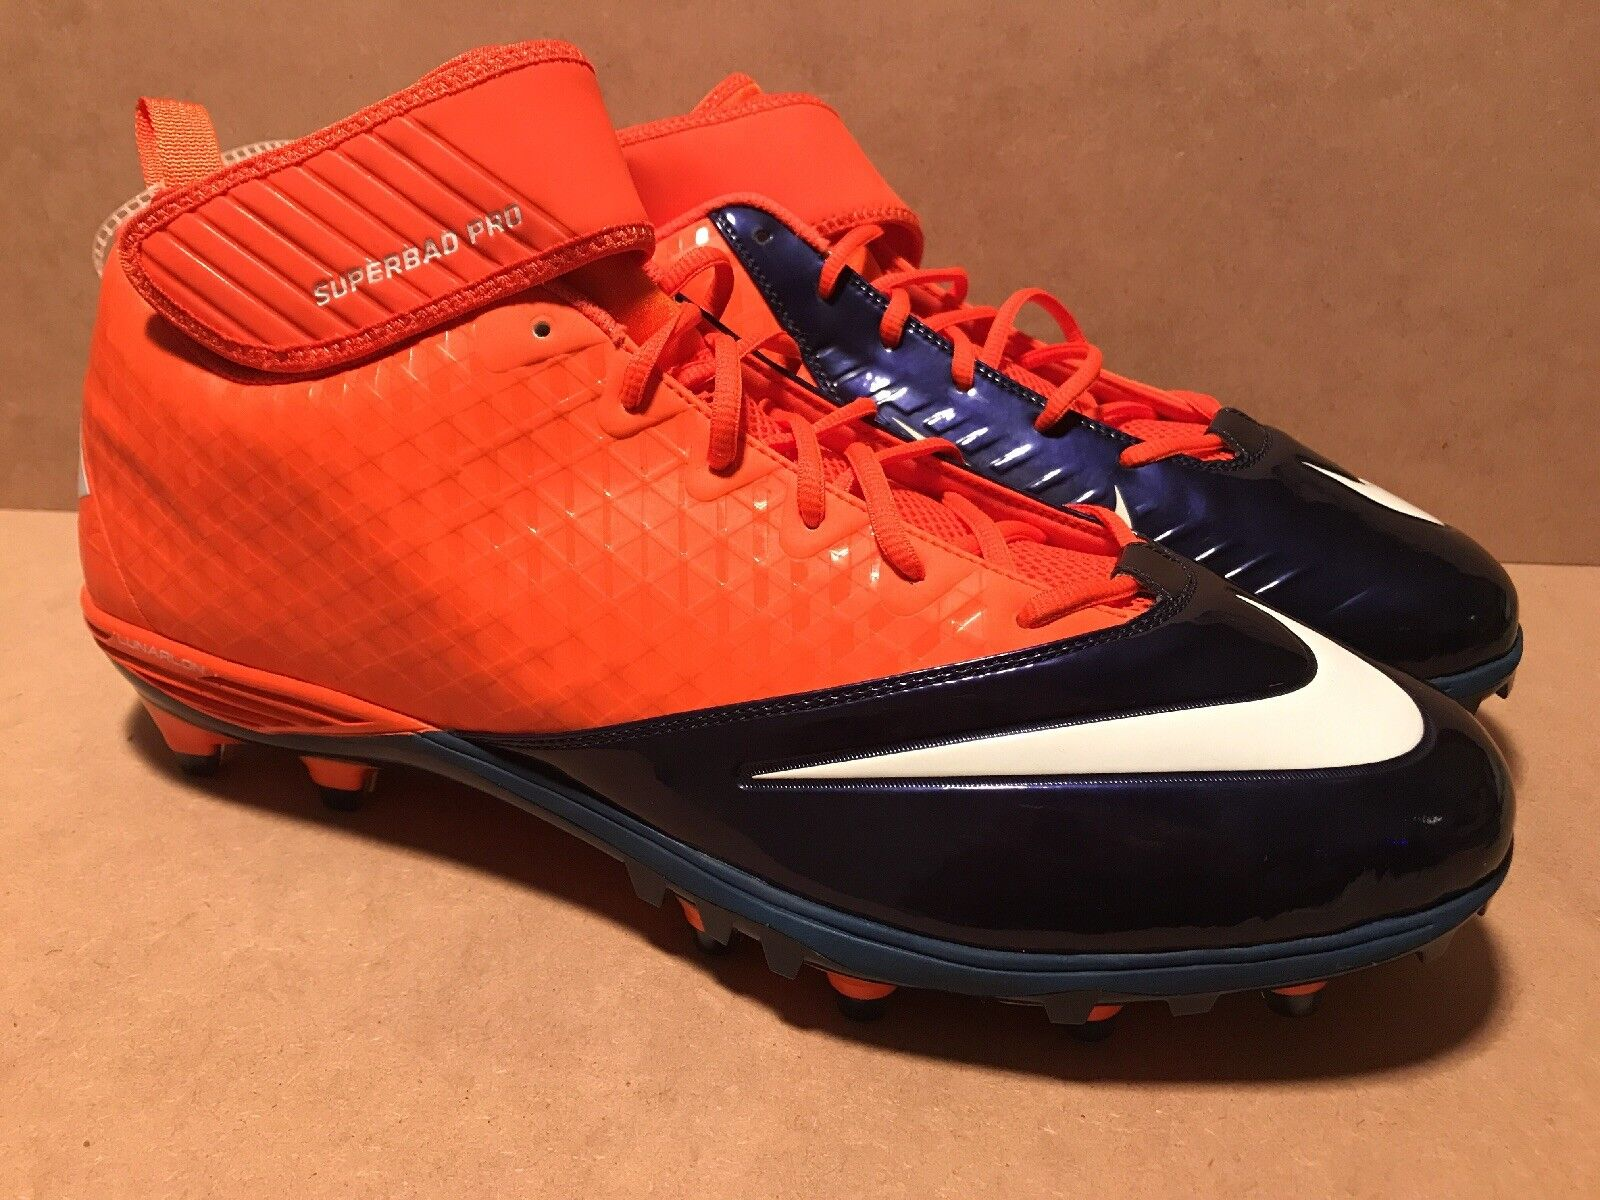 Men's Size 18 NIKE Lunarlon Superbad Denver Broncos Cleats Shoes 534994-810